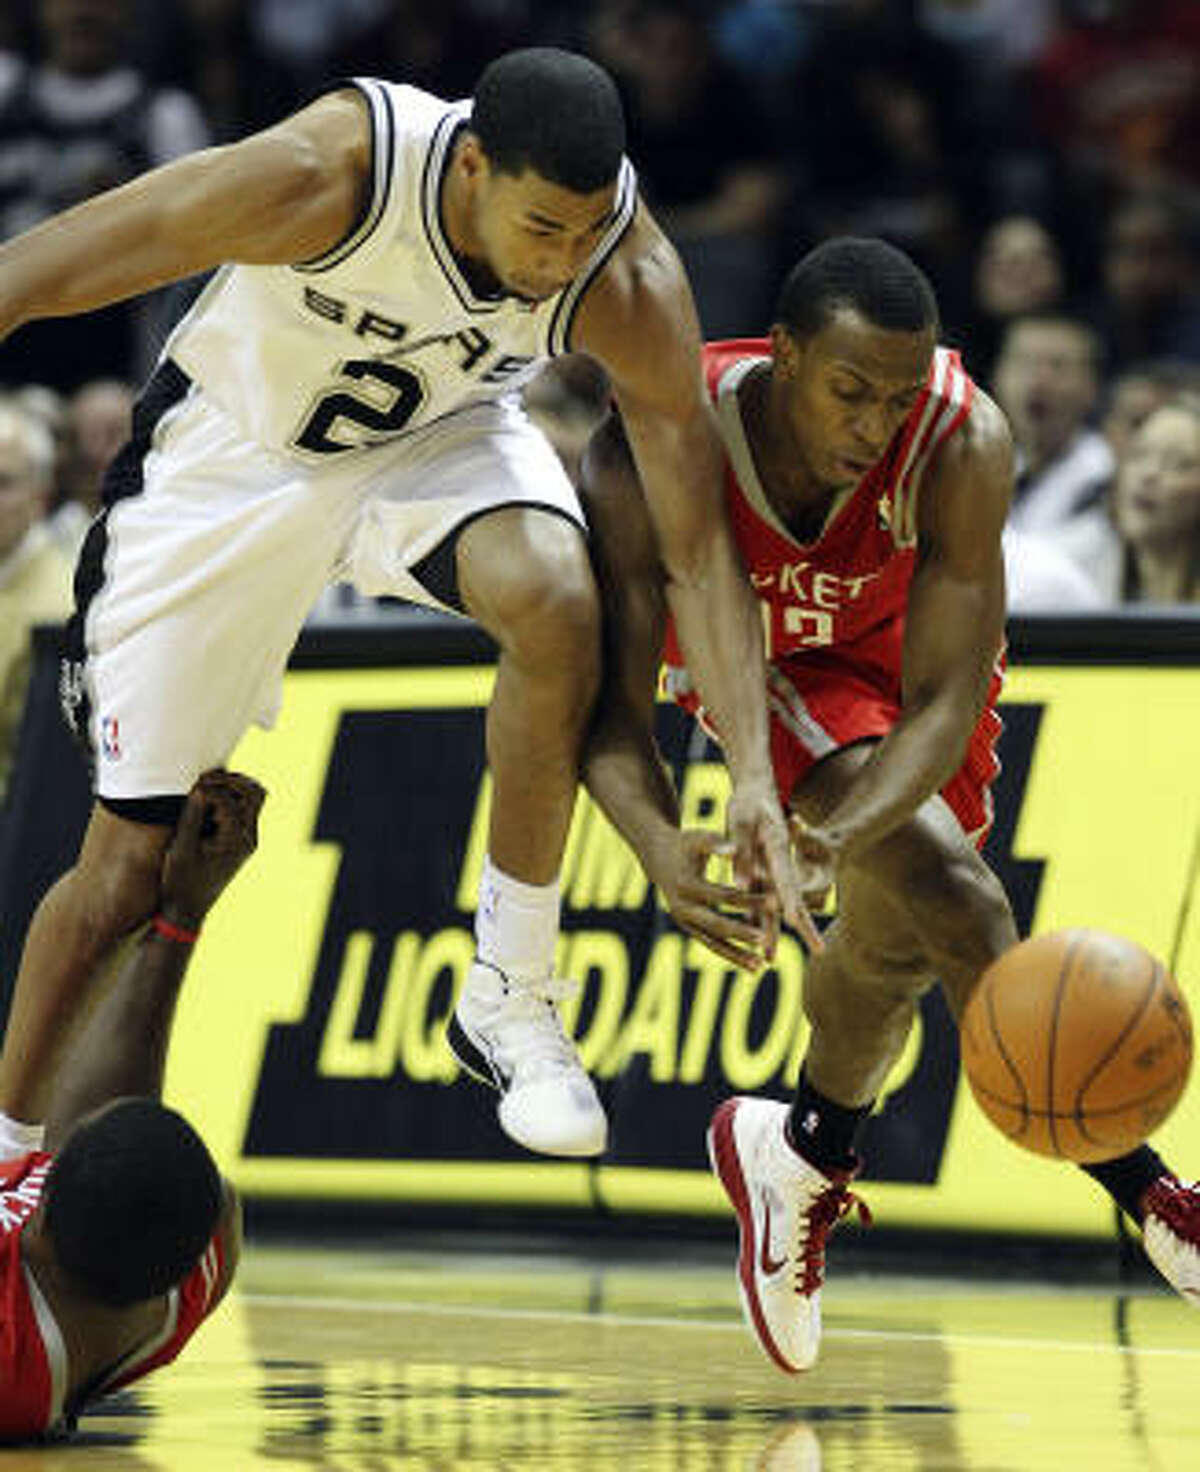 Spurs guard Garrett Temple and Rockets guard Ishmael Smith chase a loose ball.